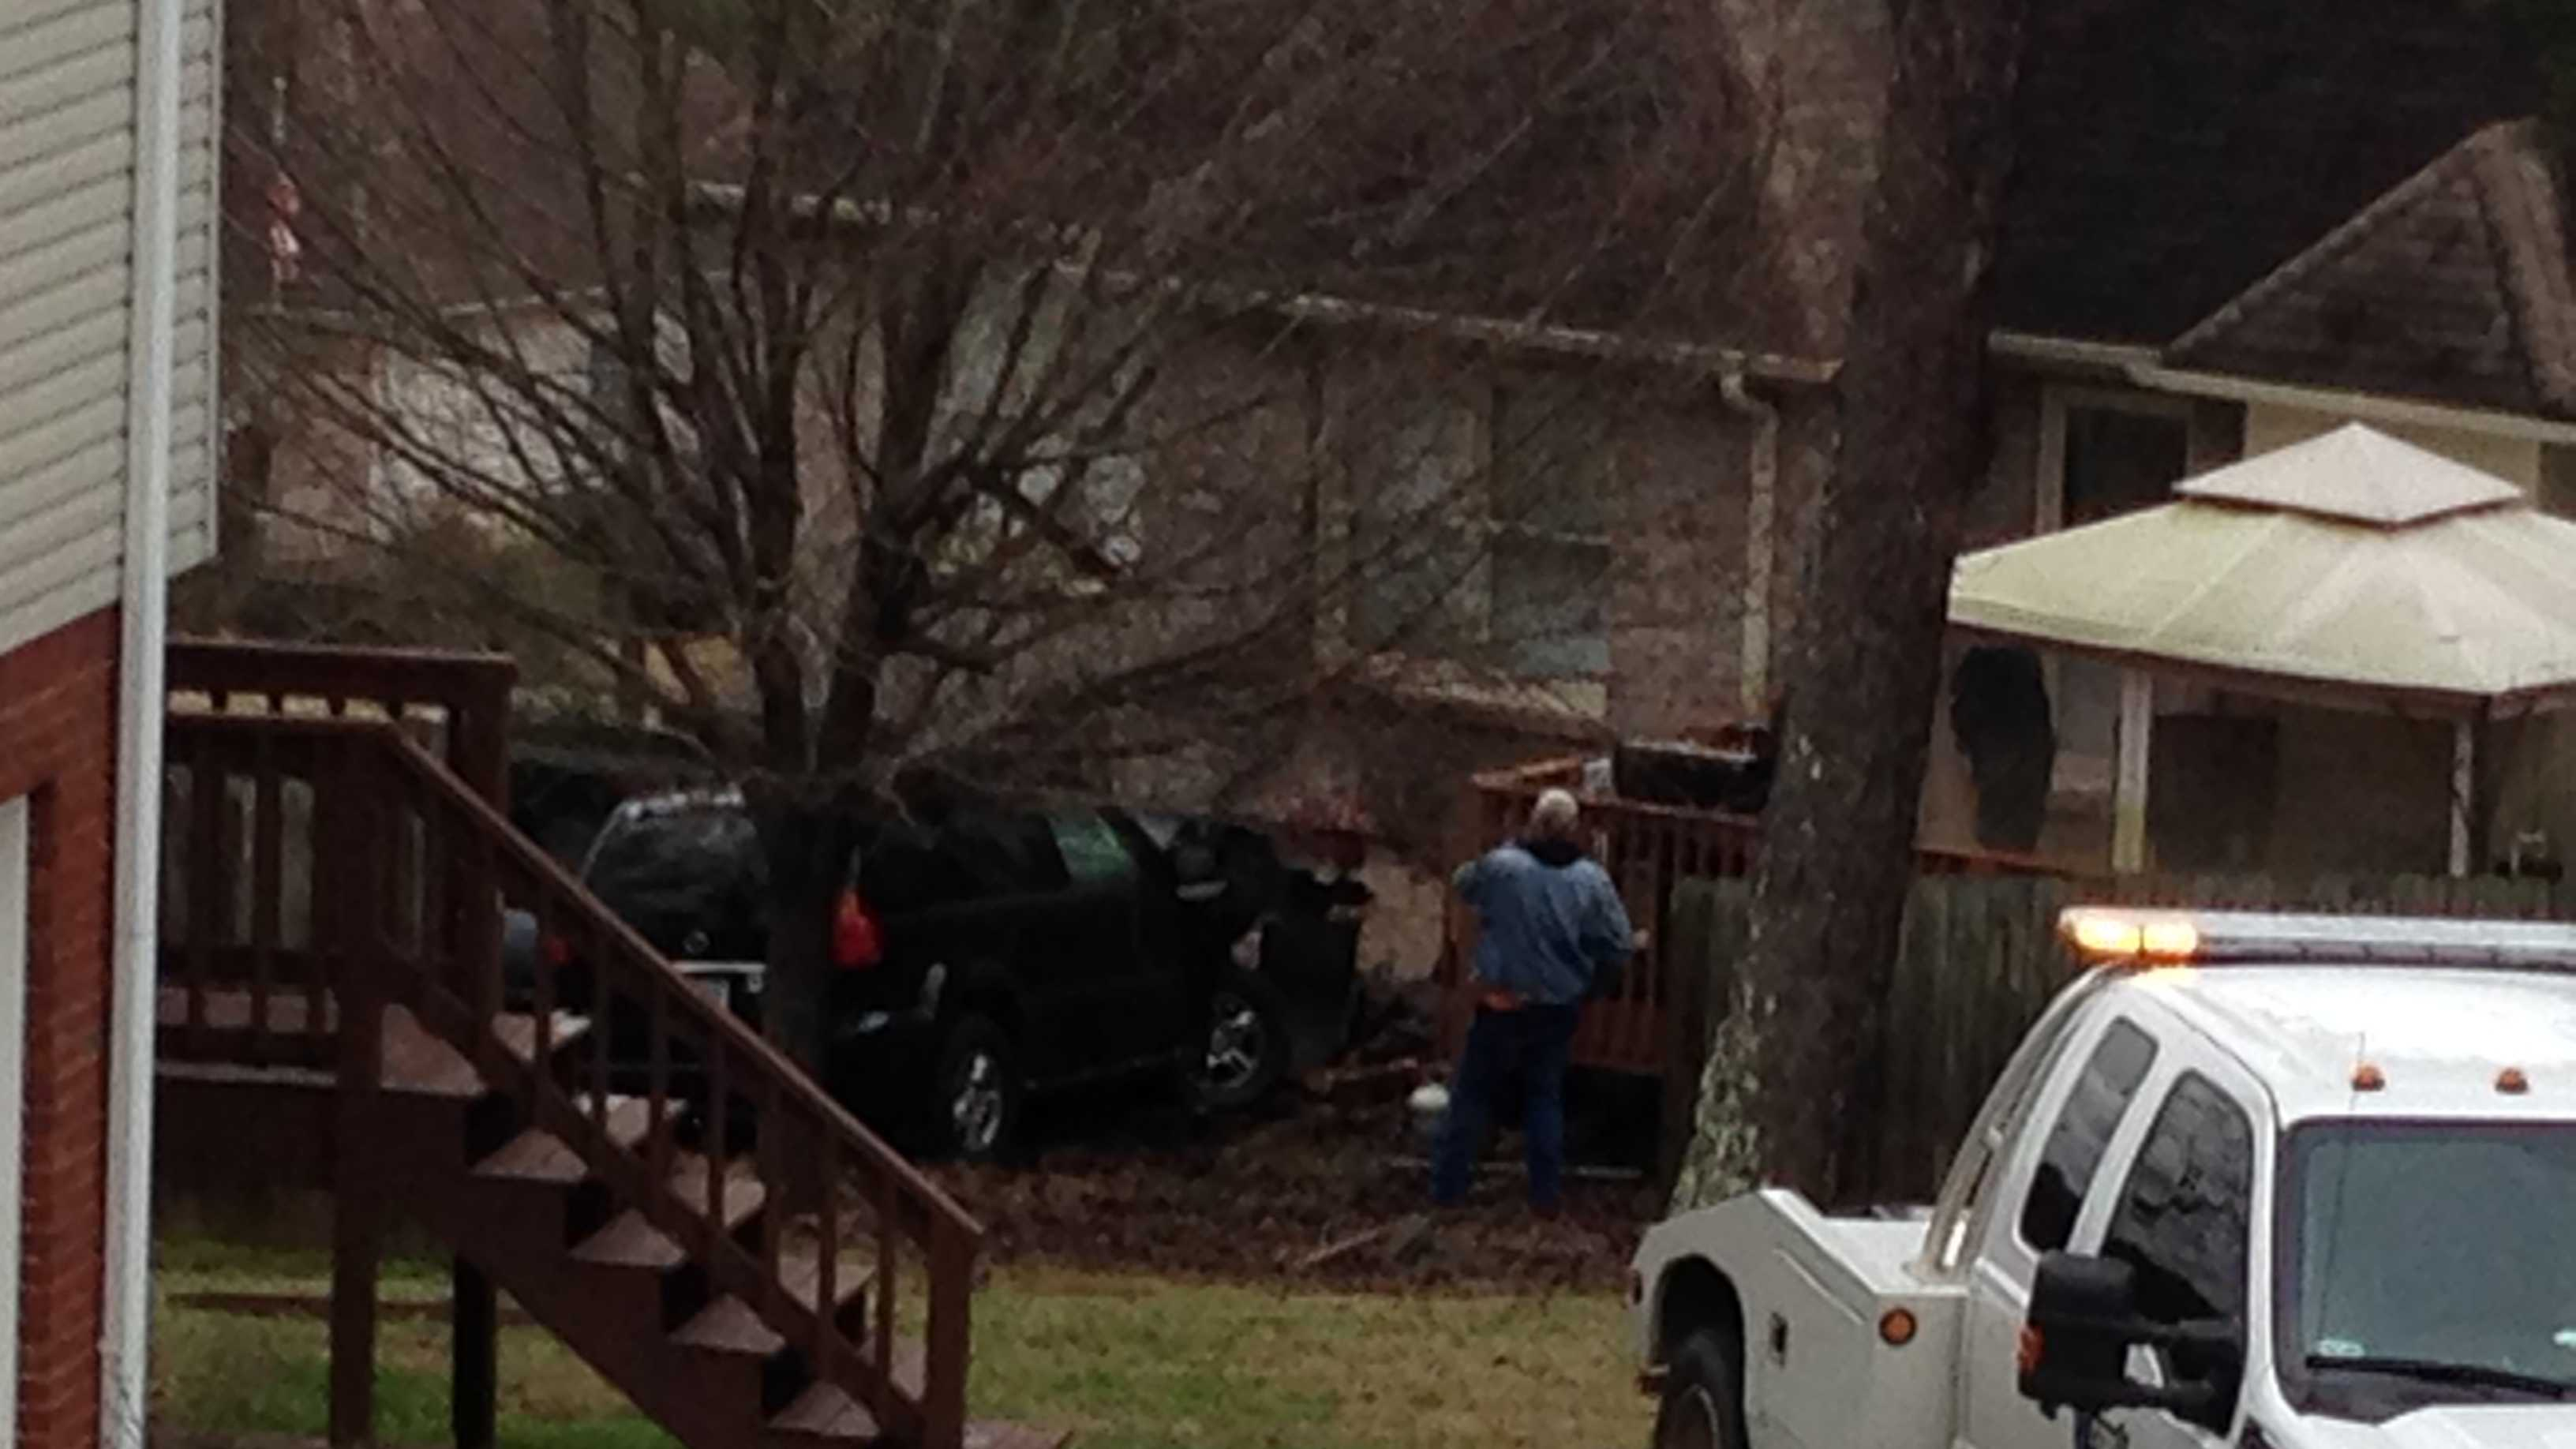 A car crashed into a home on Glen Gate Dr. in Helena.